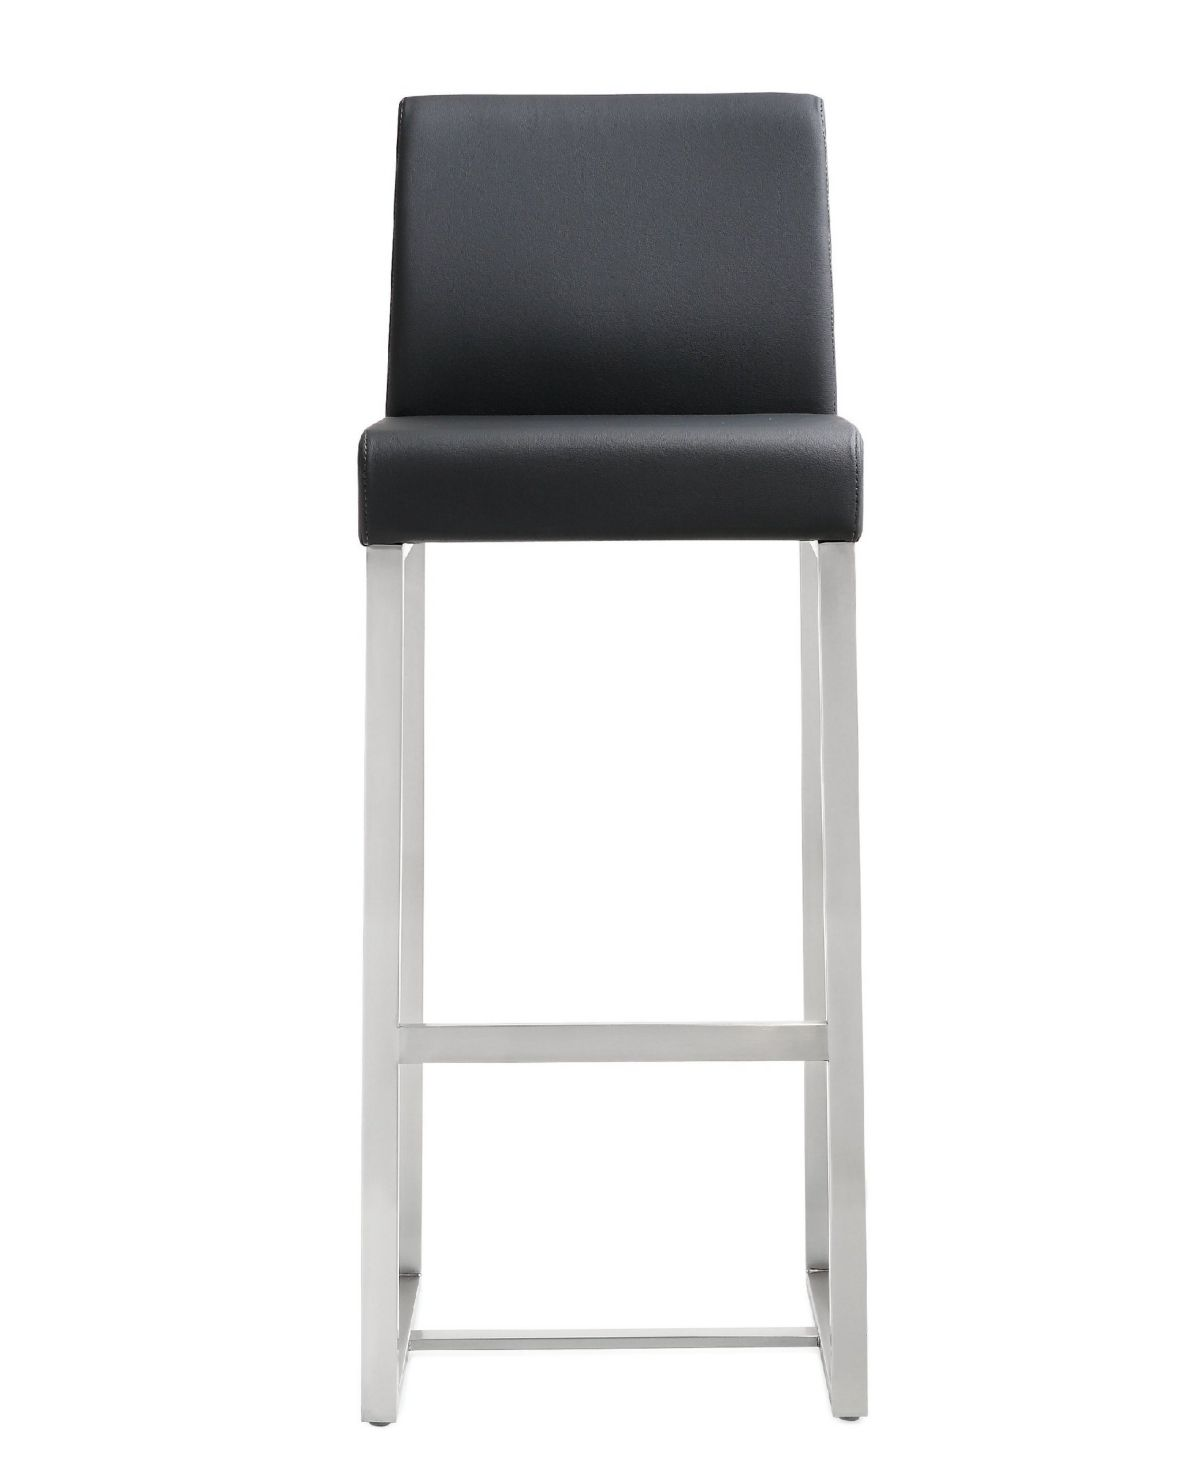 Denmark Black Steel Barstool Black Bar Stools Stool Black Bar Stools